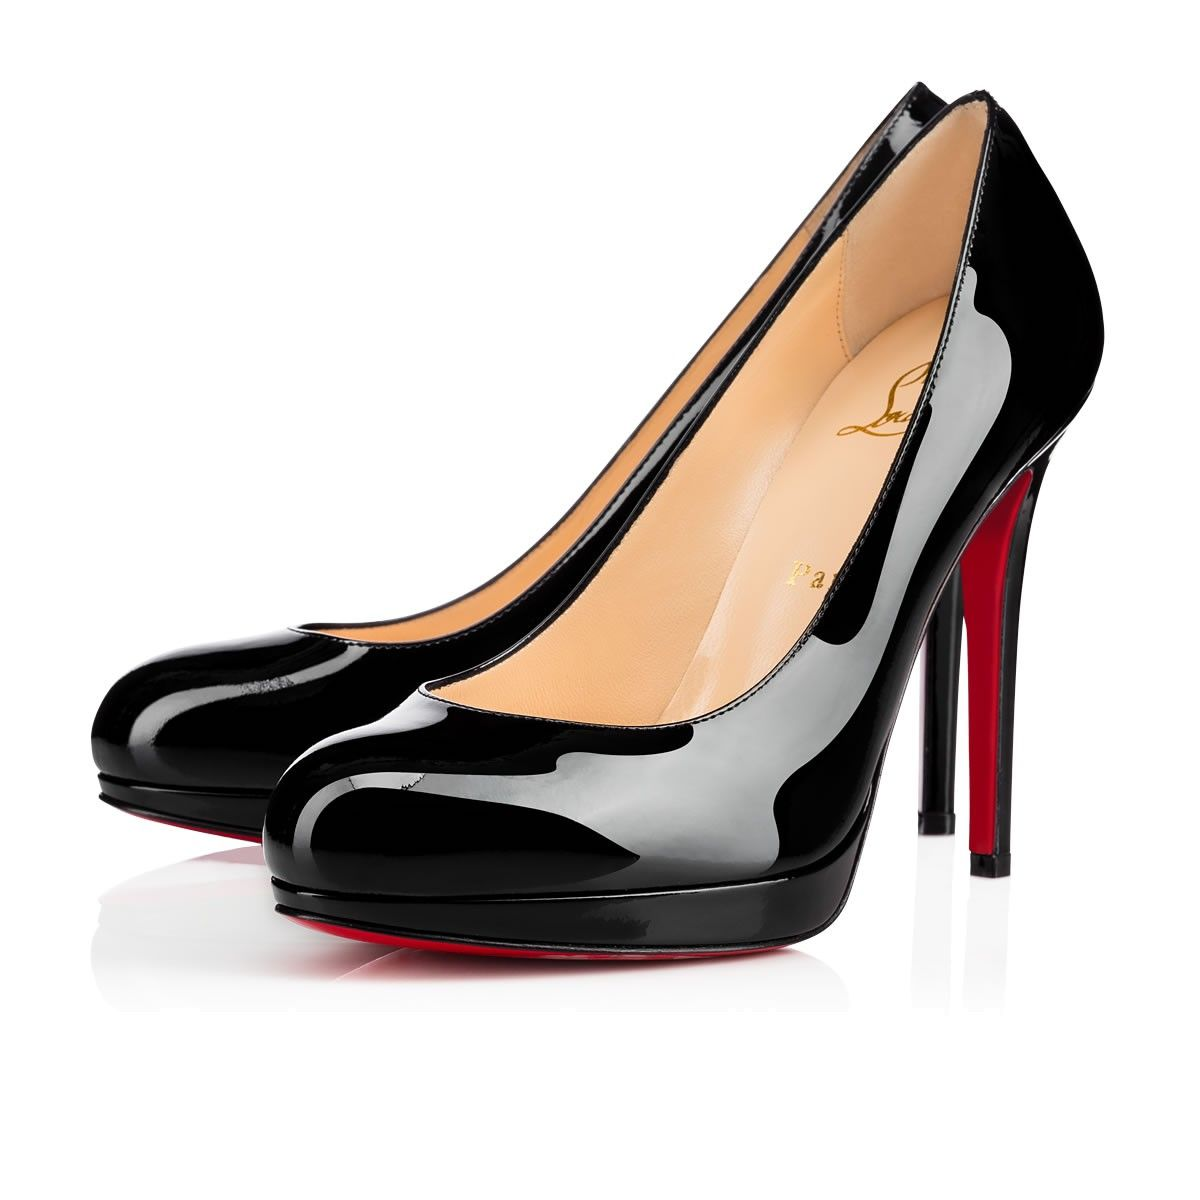 b8770e3e12a New Simple Pump 120 Black Patent Leather - Women Shoes - Christian Louboutin